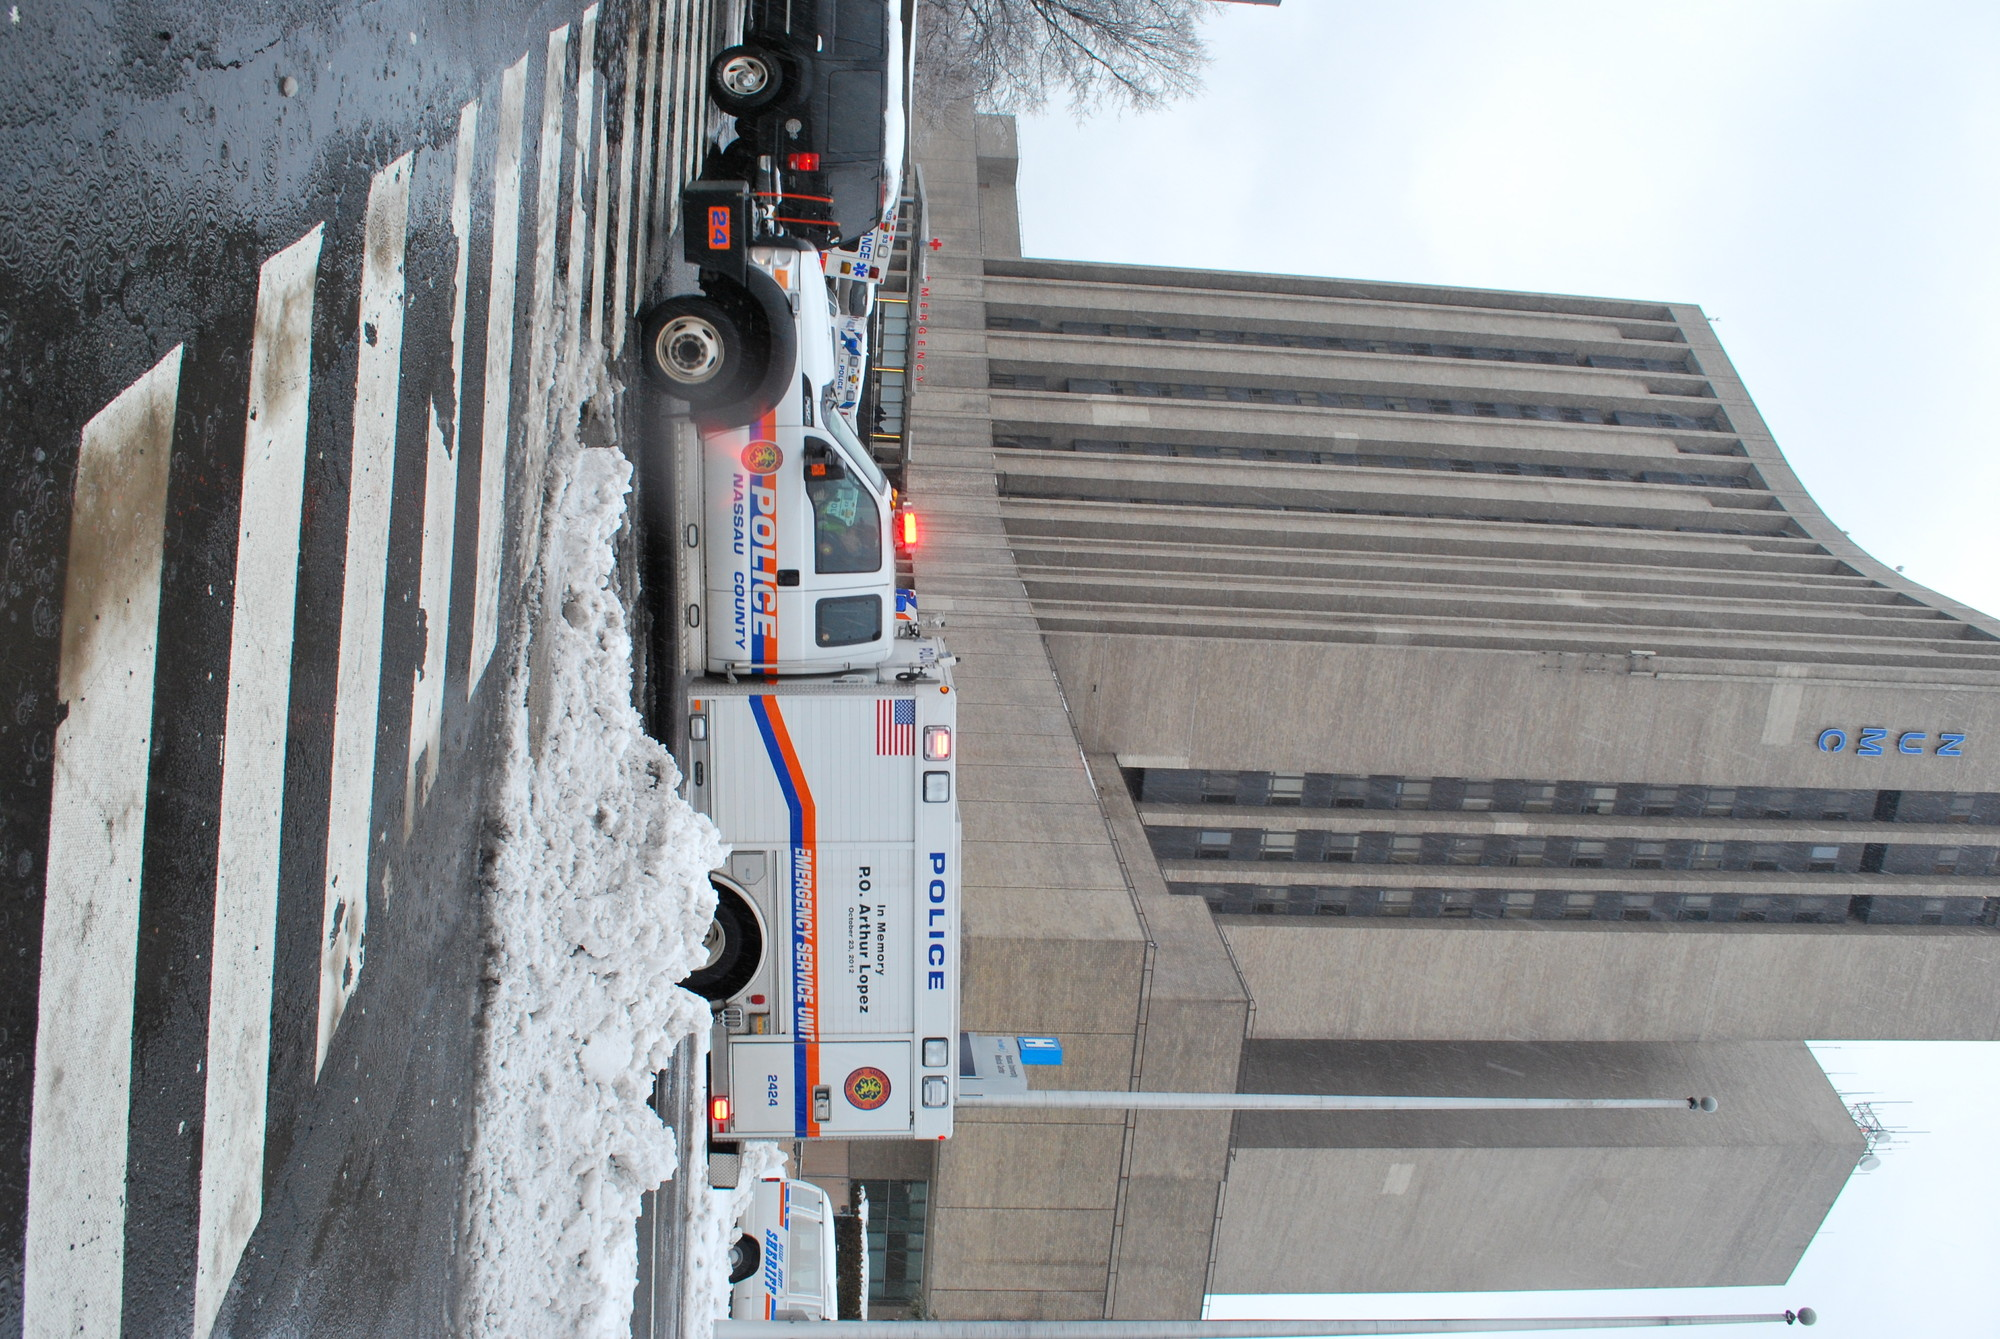 The NUMC emergency room entrance was flooded with police on Wednesday morning.